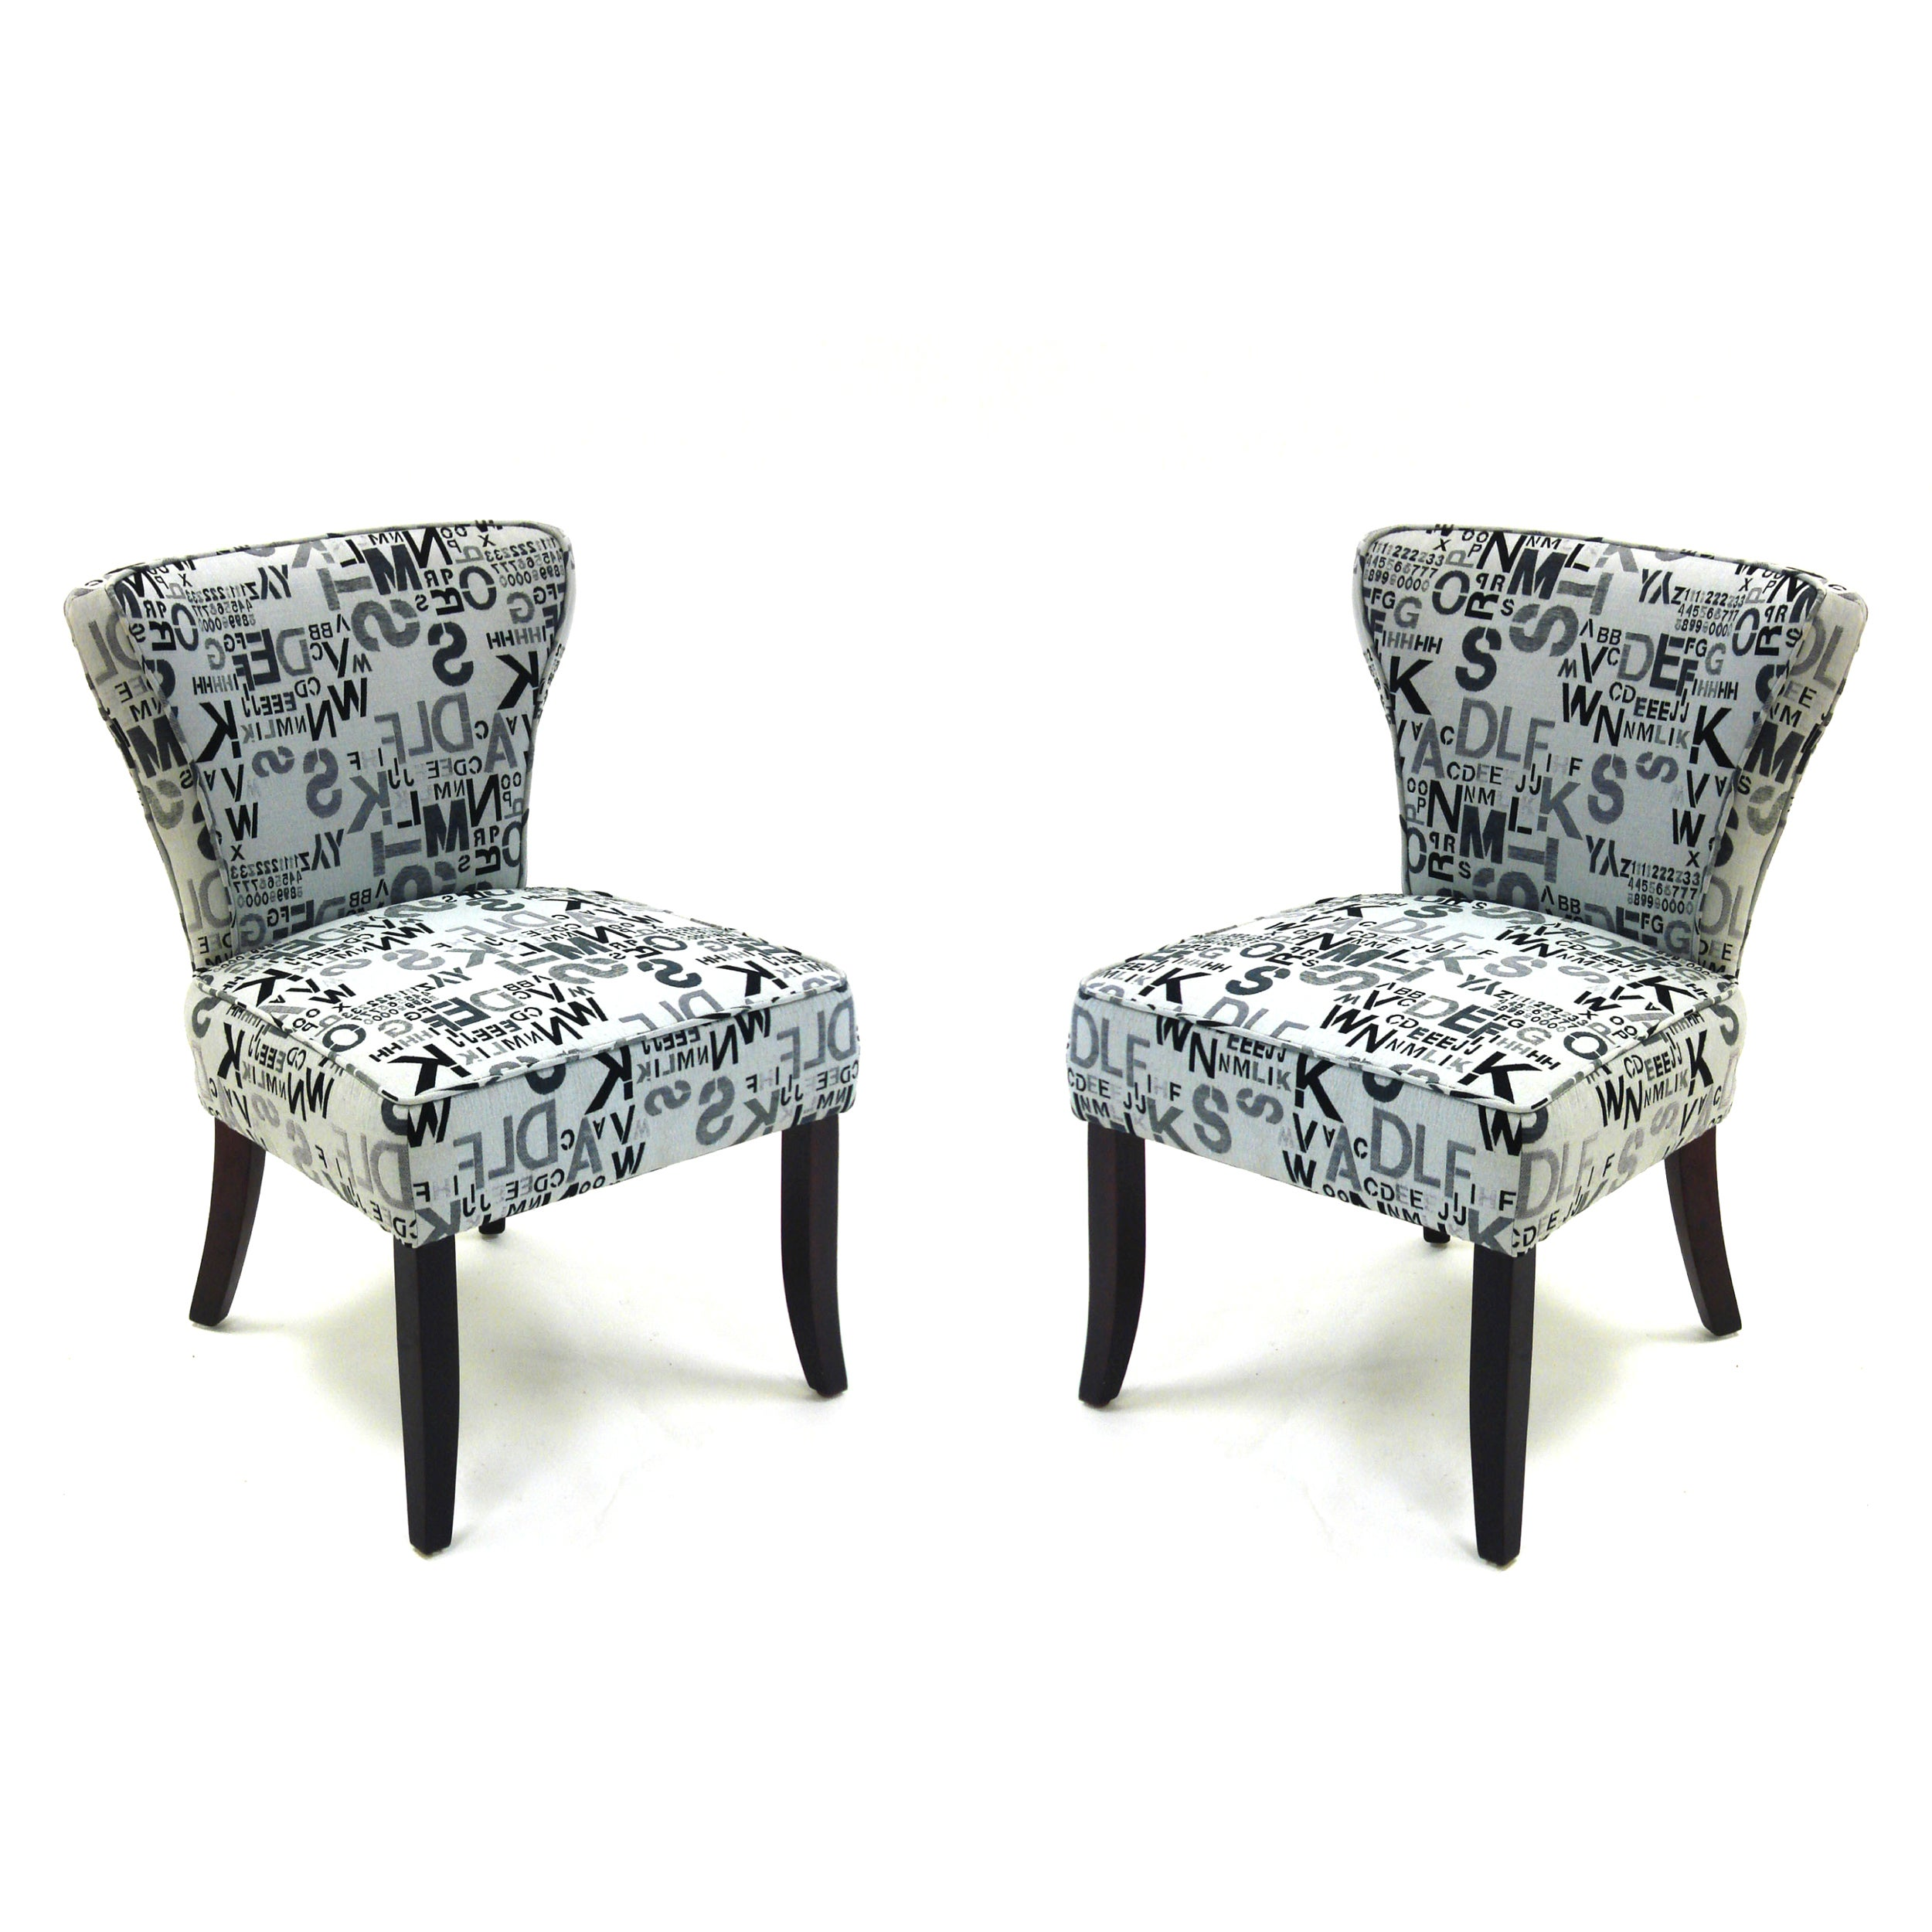 Modern Letters Accent Chairs In Alpha Letters Fabric Set